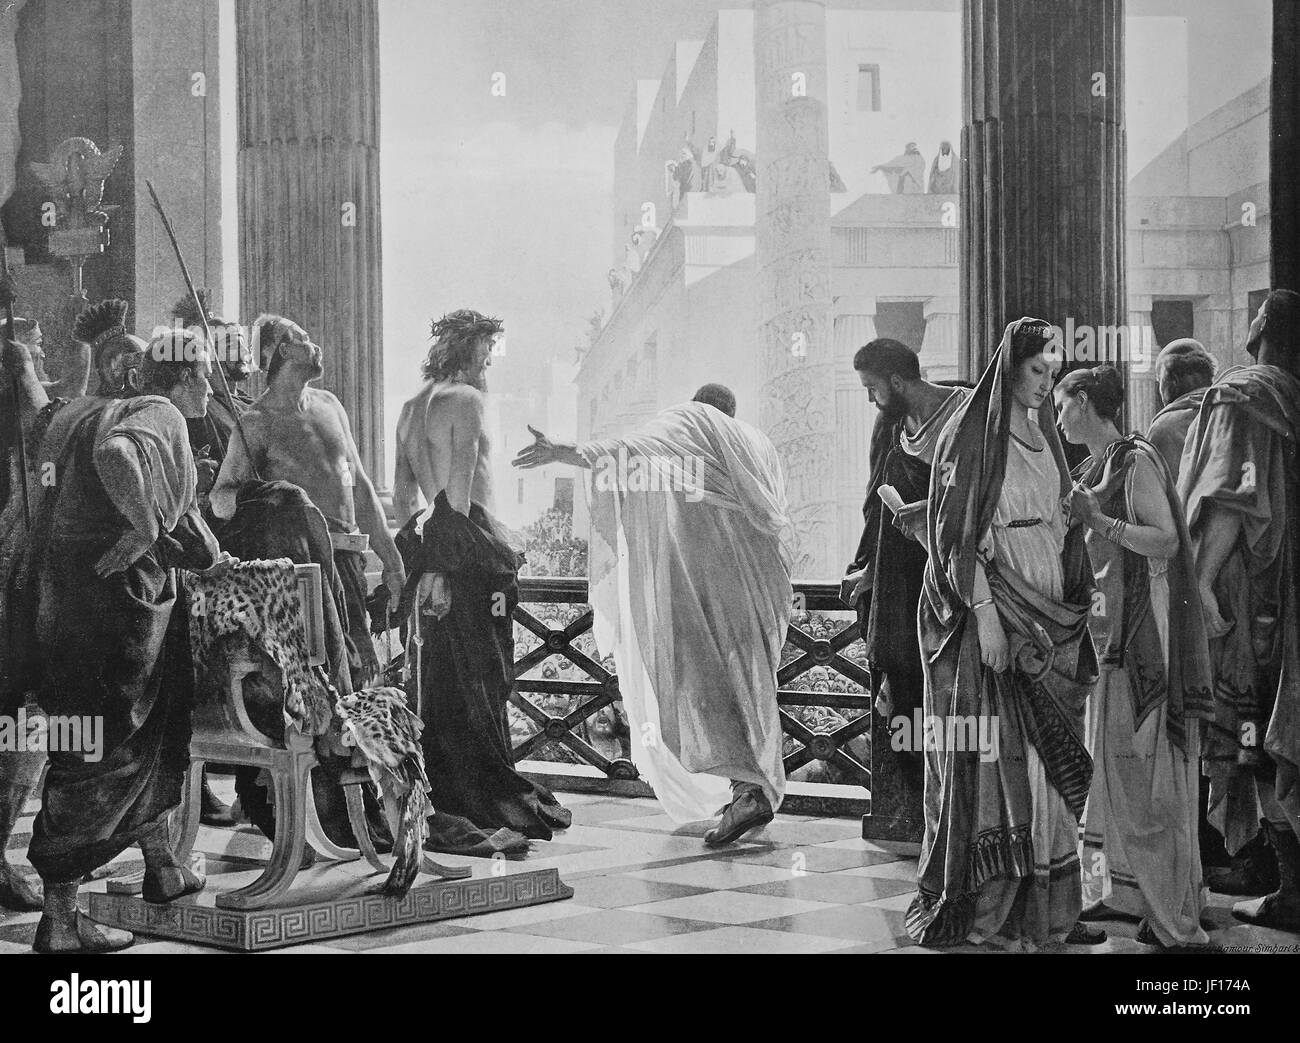 Historcal photo of Rome, Ecce Homo of A. Ciseri, national gallery, scene of the Ecce Homo is a standard component - Stock Image